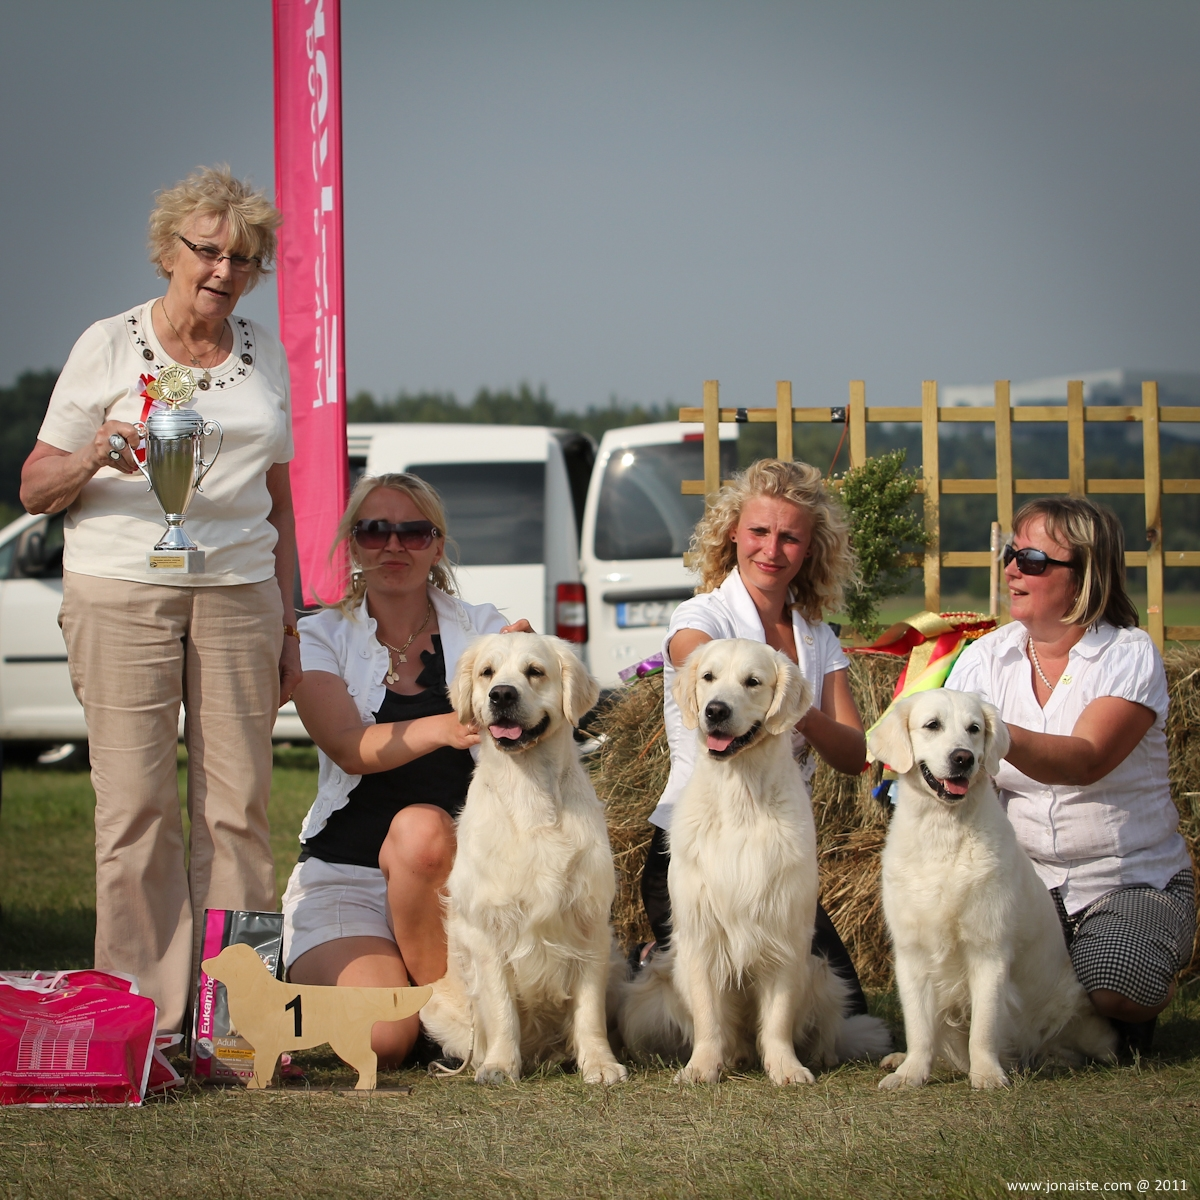 Geriausias auksaspalvių retriverių kennel - 1 place GREENHILL`S own. Virtanen Anne